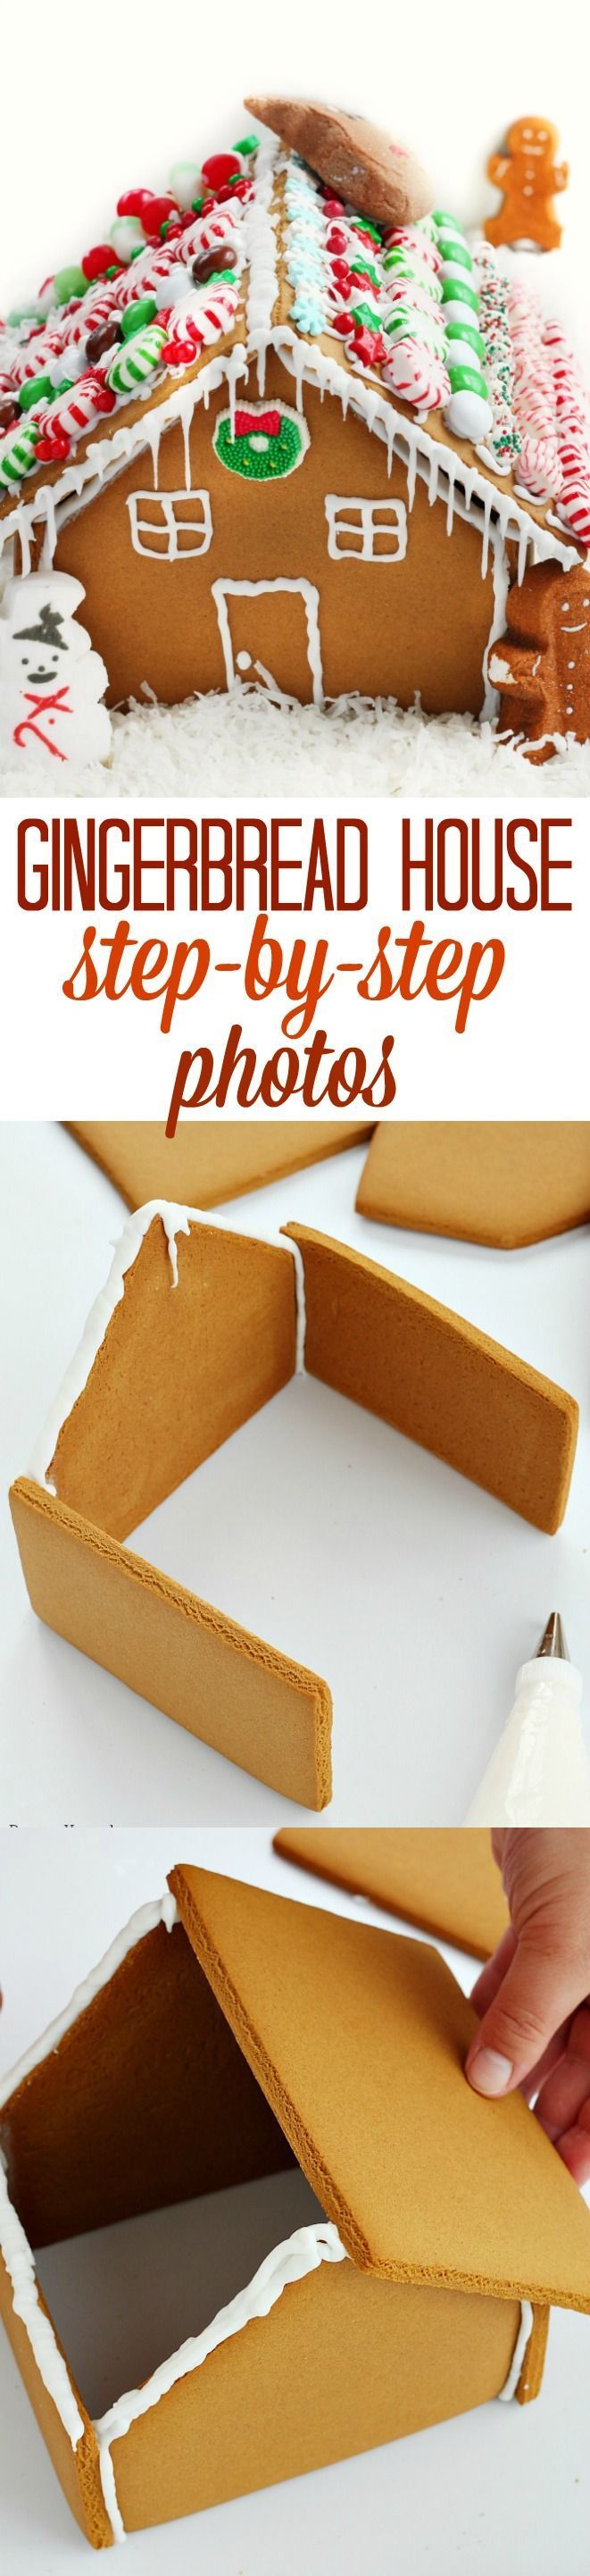 how to make a gingerbread house with biscuits